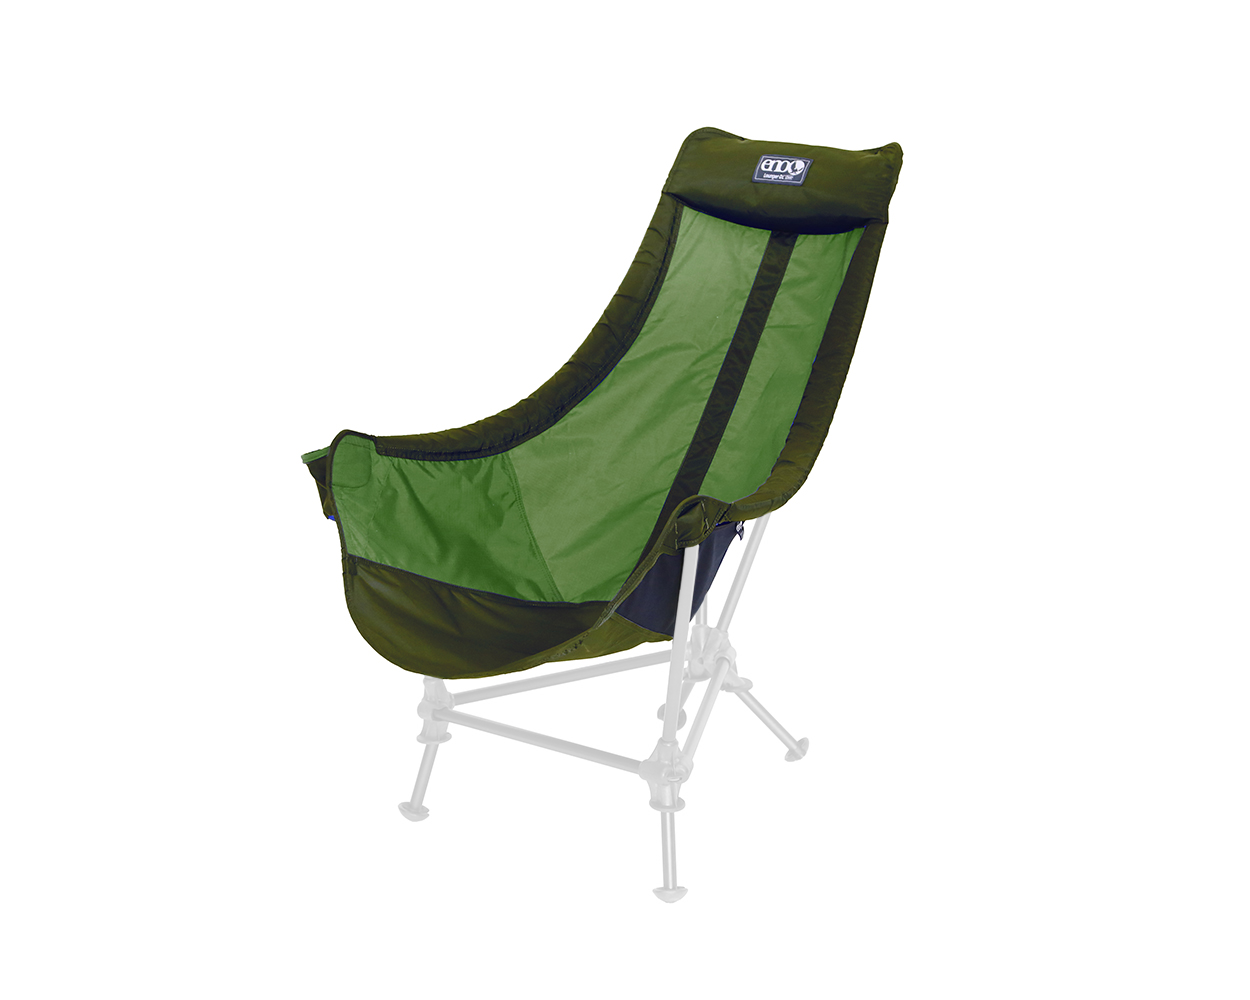 Eagles Nest Outfitters, Inc. Replacement Parts Olive/Lime Lounger DL Chair Fabric - 19799230251157